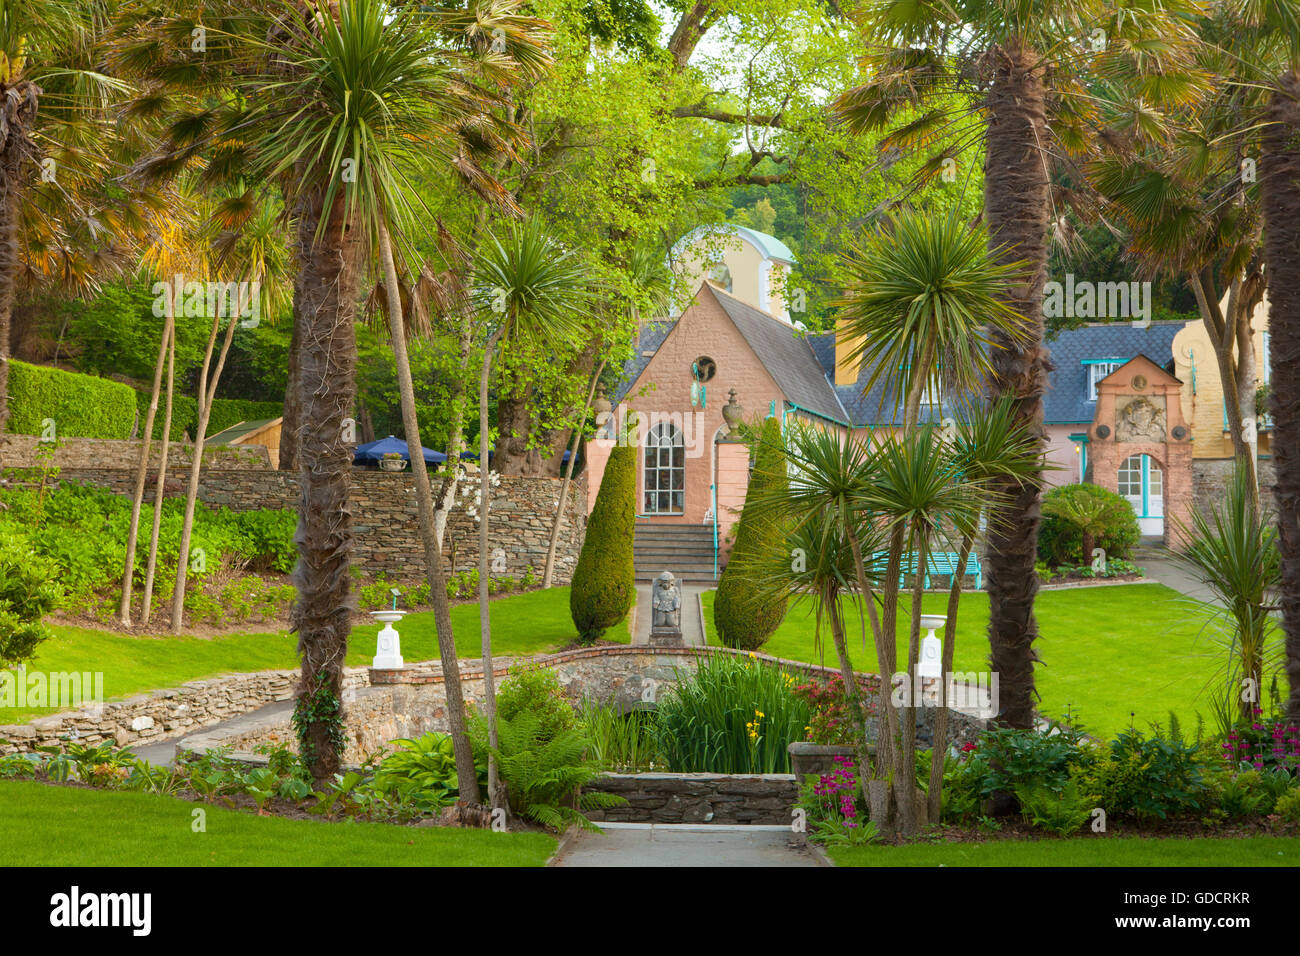 Portmeirion, the fish pond with Salutation building behind. Portmeirion, Gwynedd, North Wales. Stock Photo